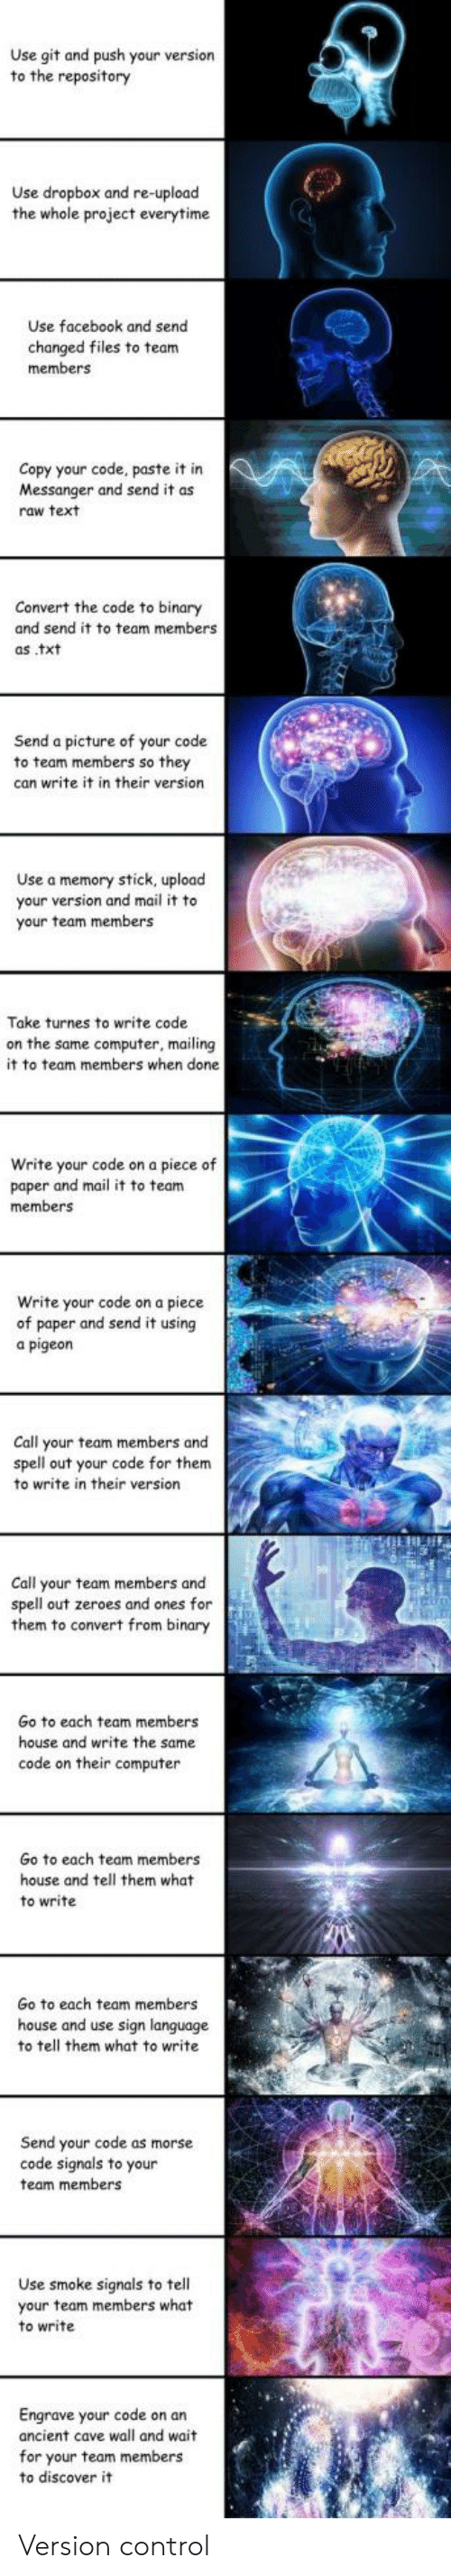 morse code: Use git and push your version  to the repository  Use dropbox and re-upload  the whole project everytime  Use facebook and send  changed files to team  members  Copy your code, paste it in  Messanger and send it as  raw text  Convert the code to binary  and send it to team members  as .txt  Send a picture of your code  to team members so they  can write it in their version  Use a memory stick, upload  your version and mail it to  your team members  Take turnes to write code  on the same computer, mailing  it to team members when done  rite your code on a piece of  paper and mail it to team  members  Write your code on a piece  of paper and send it using  a pigeon  Call your team members and  spell out your code for them  to write in their version  Call your team members and  spell out zeroes and ones for  them to convert from binary  Go to each team members  house and write the same  code on their computer  Go to each team members  house and tell them what  to write  Go to each team members  house and use sign language  to tell them what to write  Send your code as morse  code signals to your  team members  Use smoke signals to tell  your team  to write  members what  Engrave your code on an  ancient cave wall and wait  for your team members  to discover it Version control